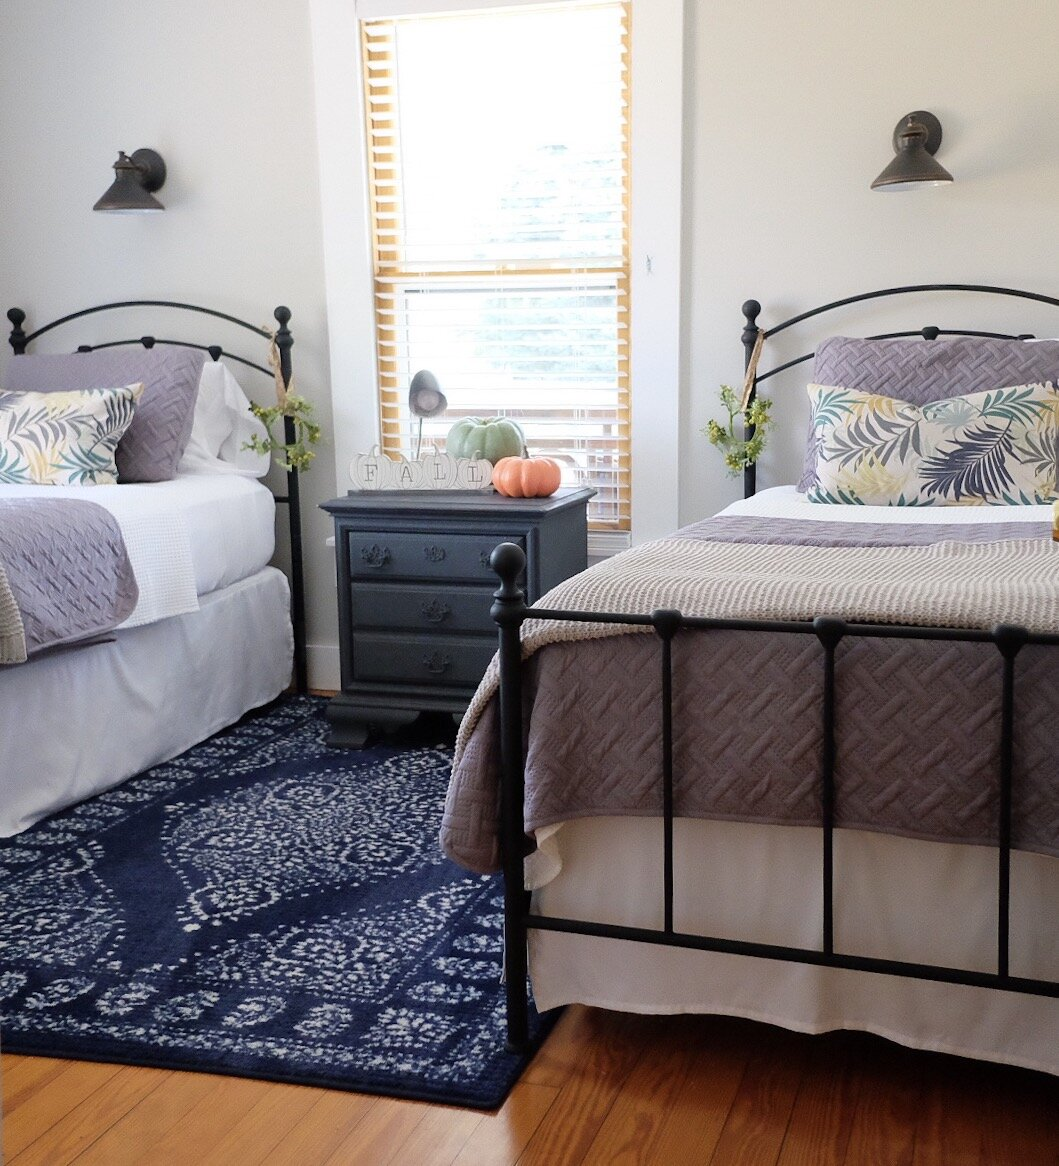 Simple decor is all that is needed for this bedroom at the  bungalow Airbnb.